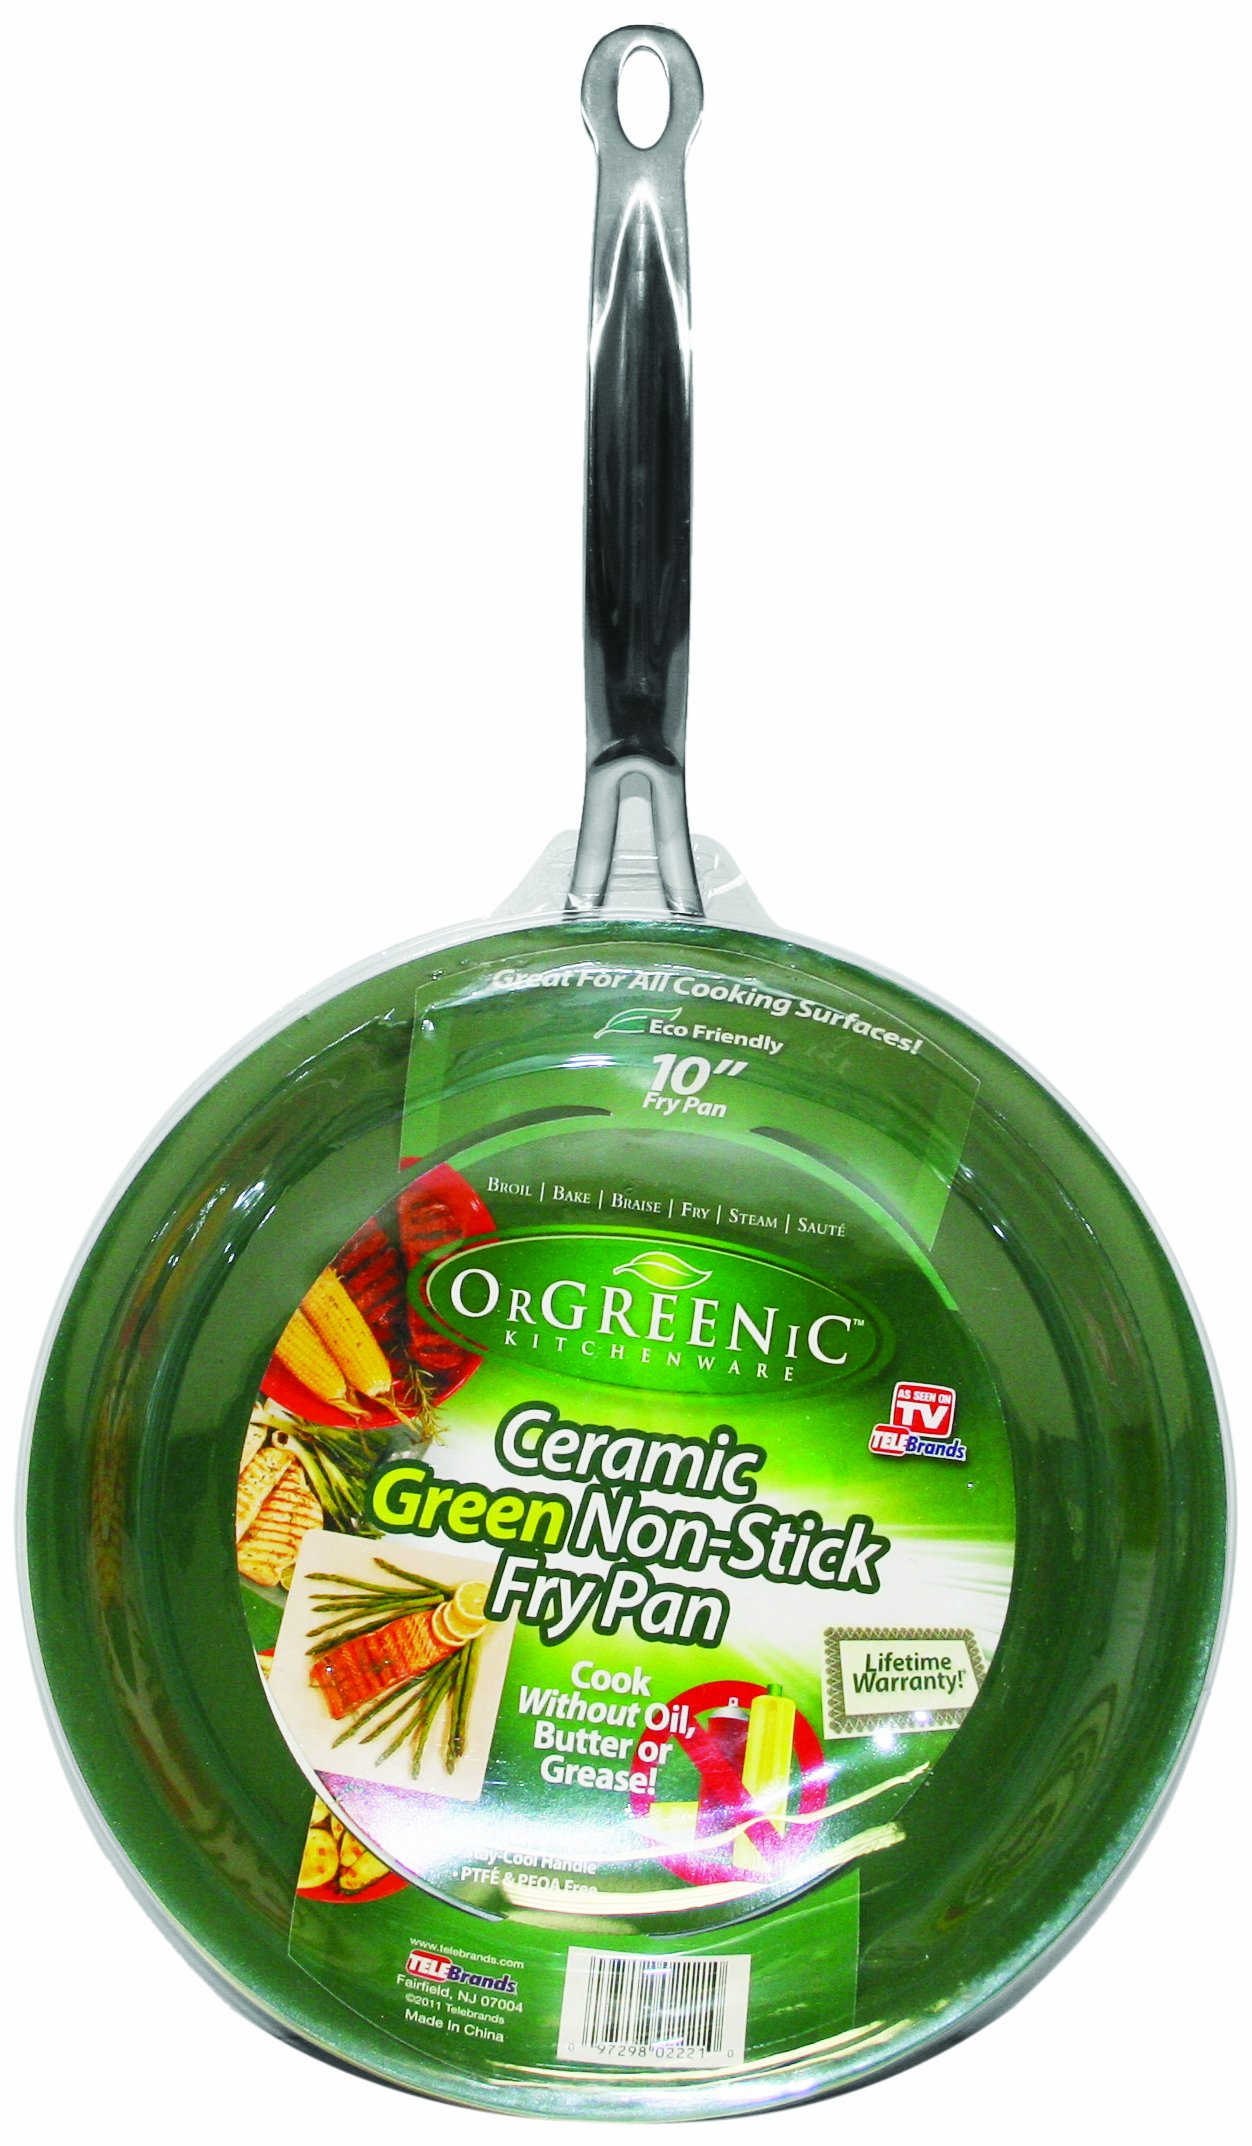 Telebrands Orgreenic Frying Pan, 10''